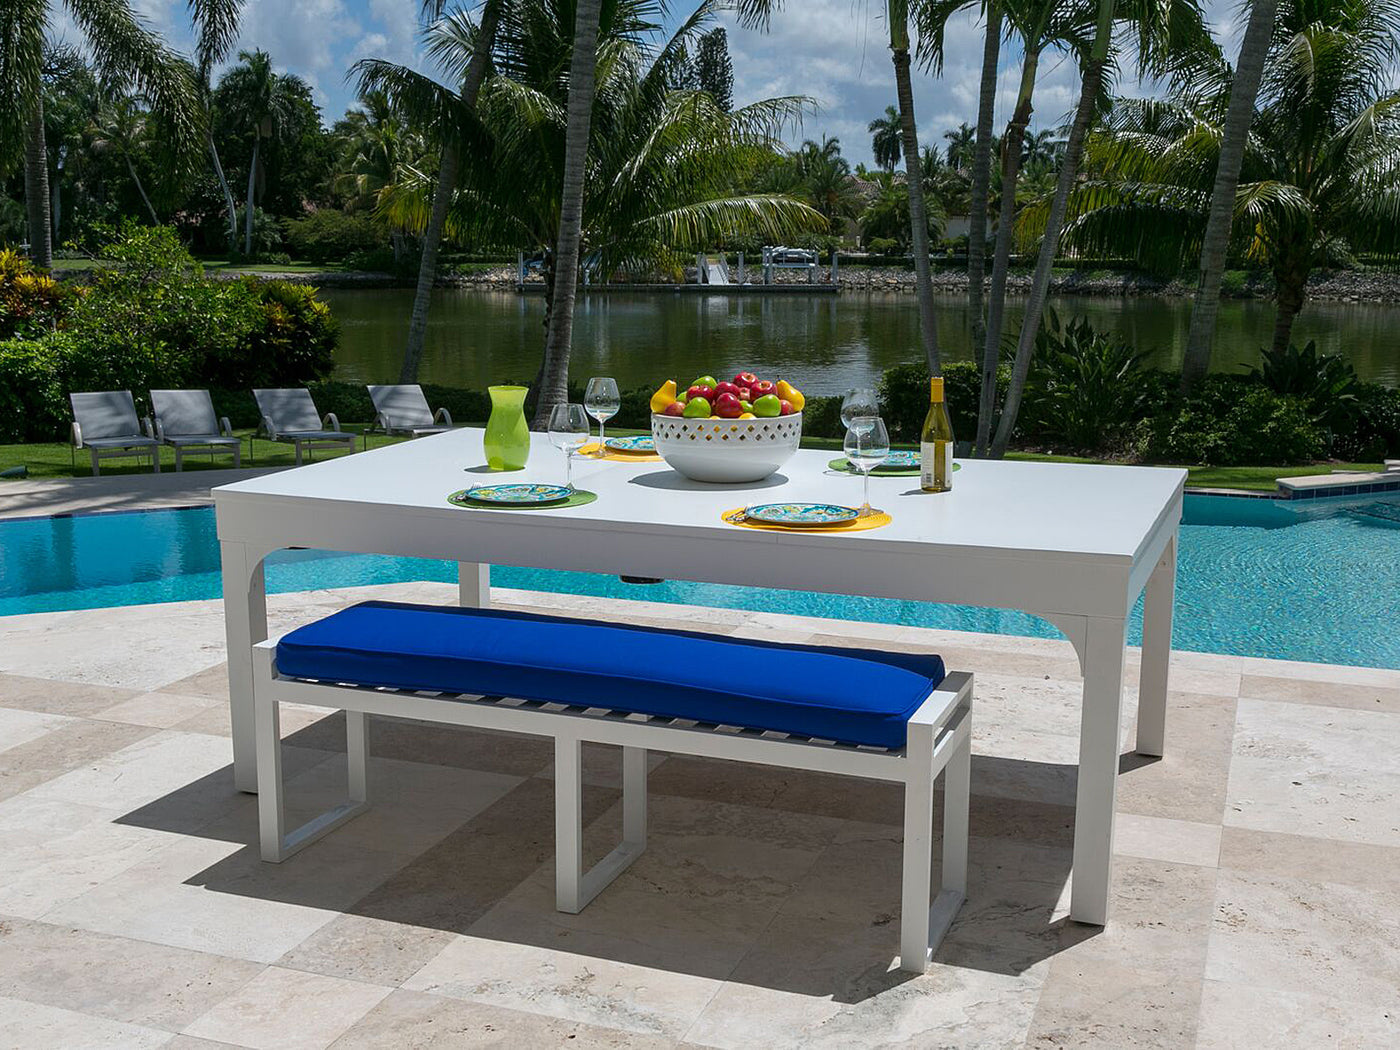 product dining schlemmer the billiards table outdoor to pool hammacher